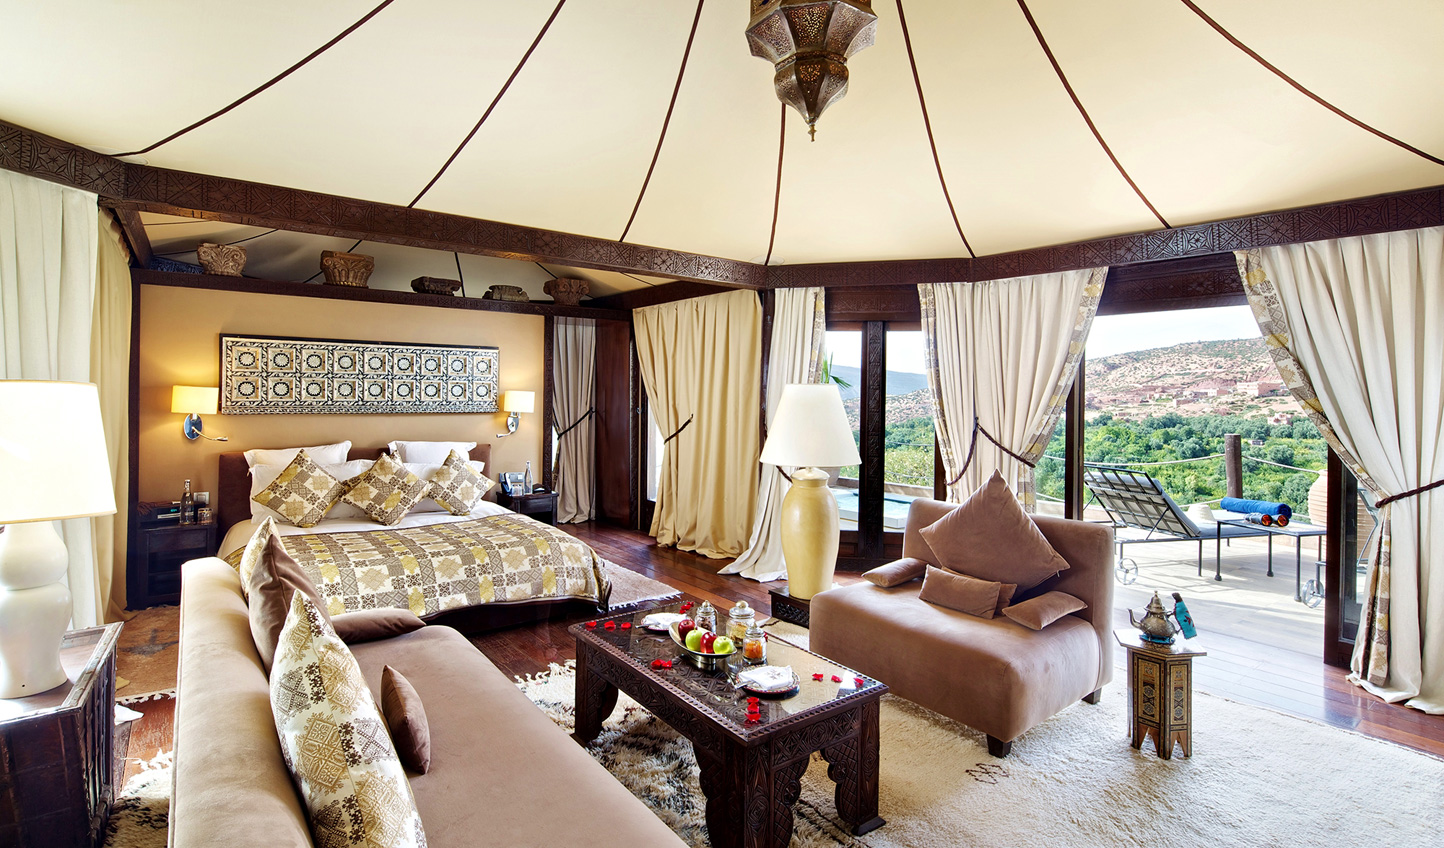 Blend Berber design with the utmost luxury at Kasbah Tamadot